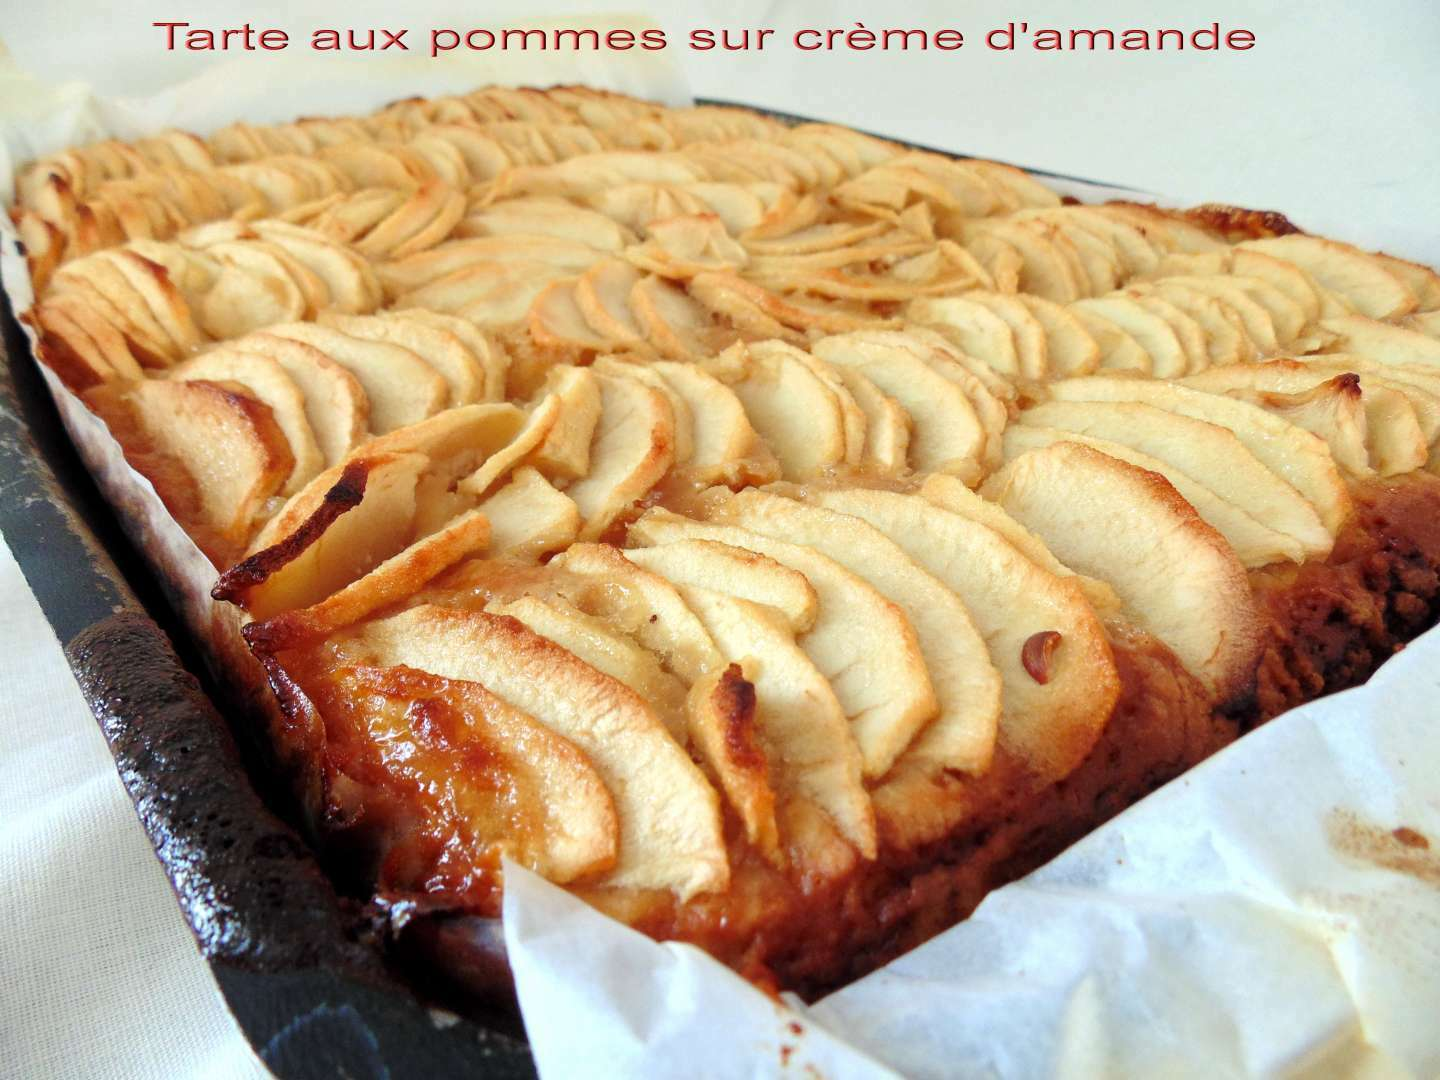 tarte aux pommes sur cr me d 39 amande p te au fromage blanc recette ptitchef. Black Bedroom Furniture Sets. Home Design Ideas